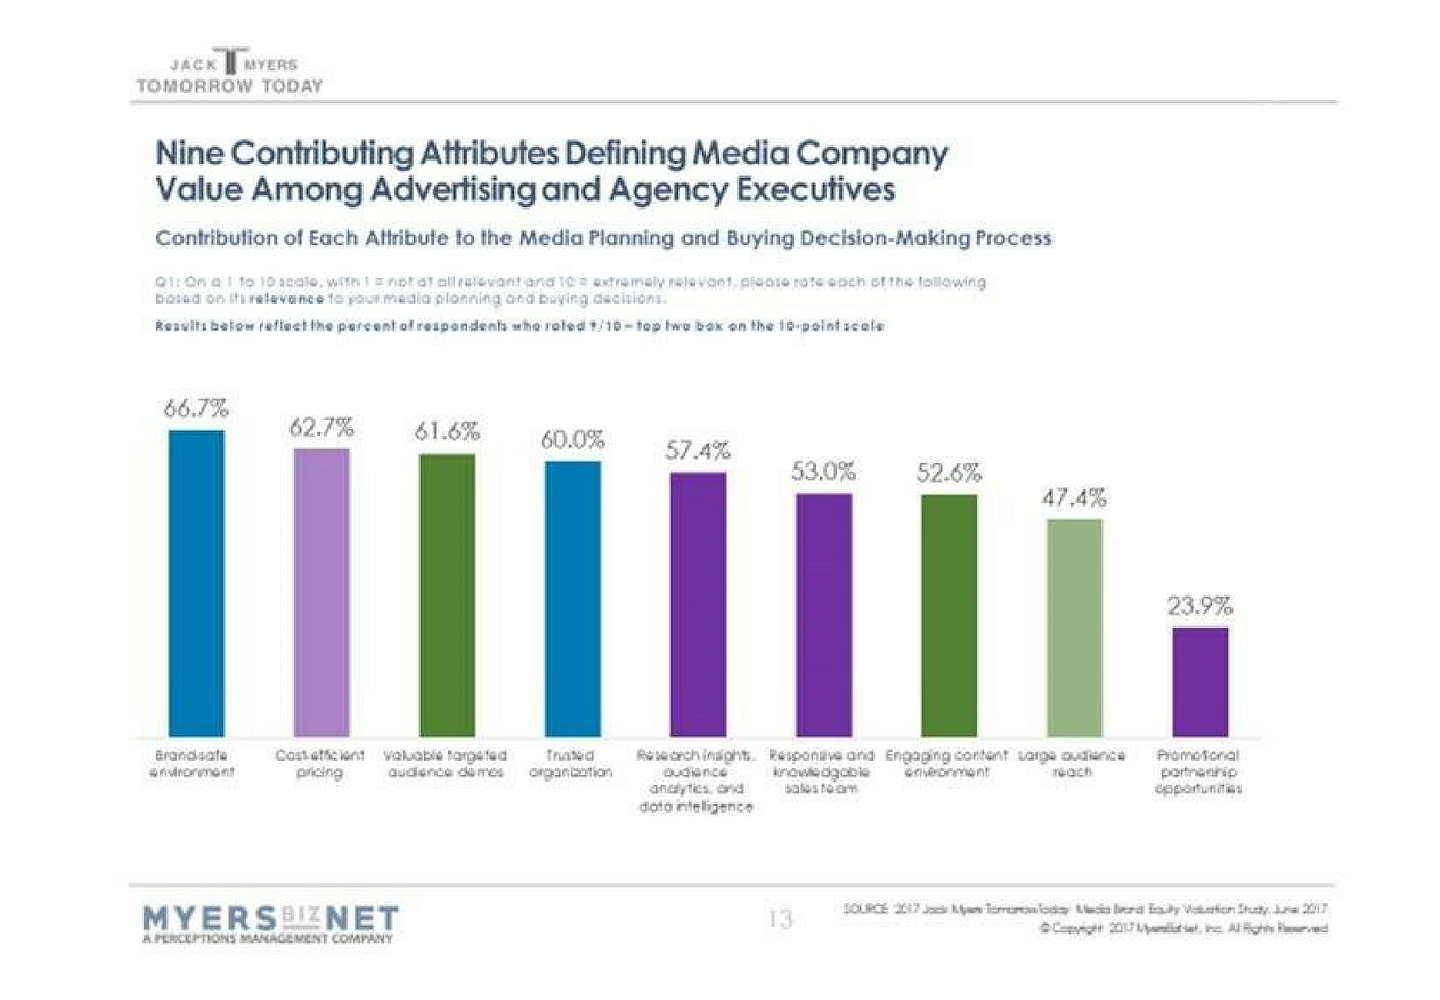 Nine Contributing Attributes Defining Media Company Value Among Advertising & Agency Executives